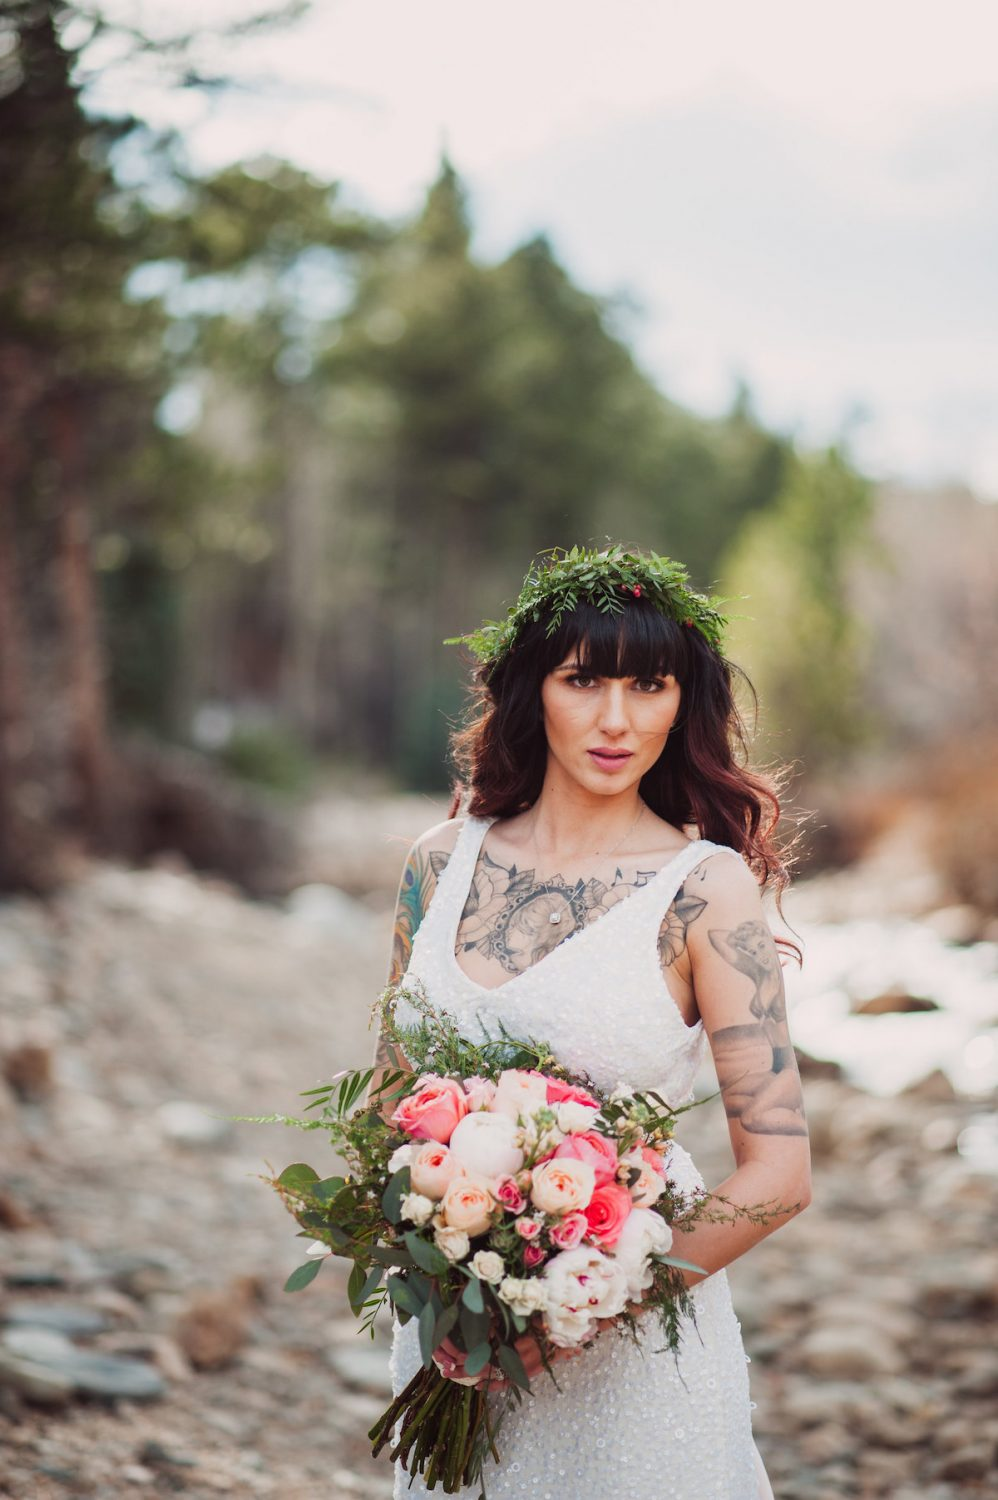 A Stunning Colorado Bride